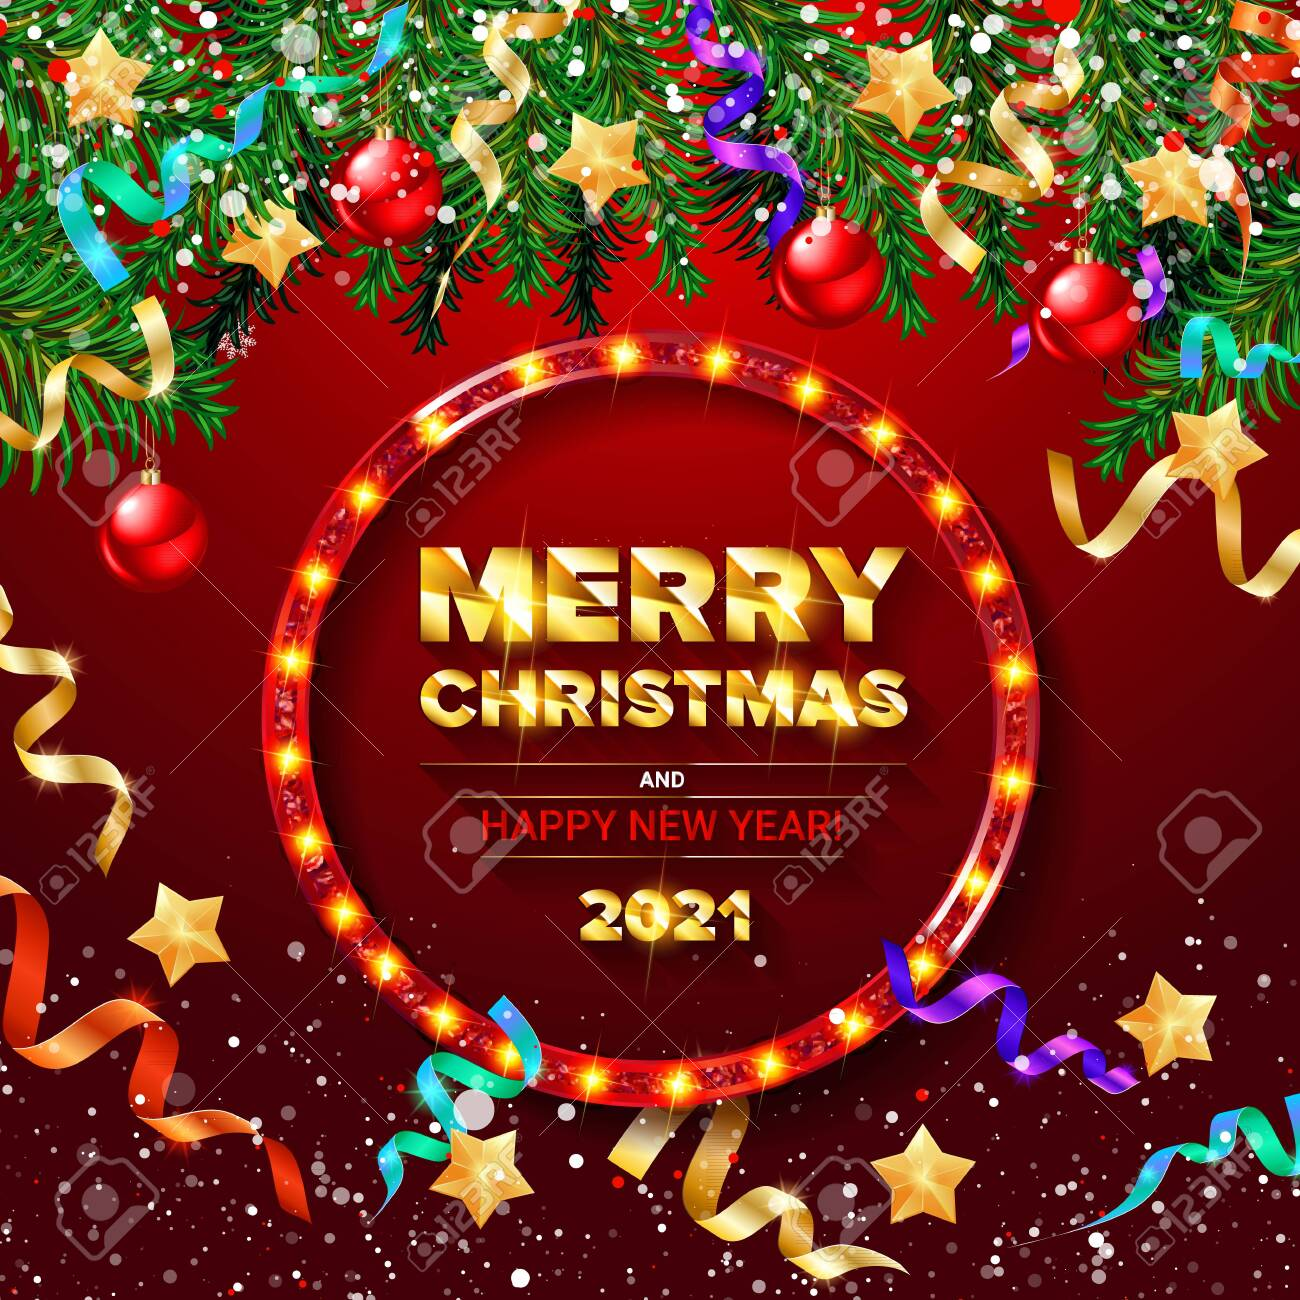 Free Christmas Pictures 2021 Red Greeting Card With Christmas And New Year 2021 Beautiful Royalty Free Cliparts Vectors And Stock Illustration Image 145448202